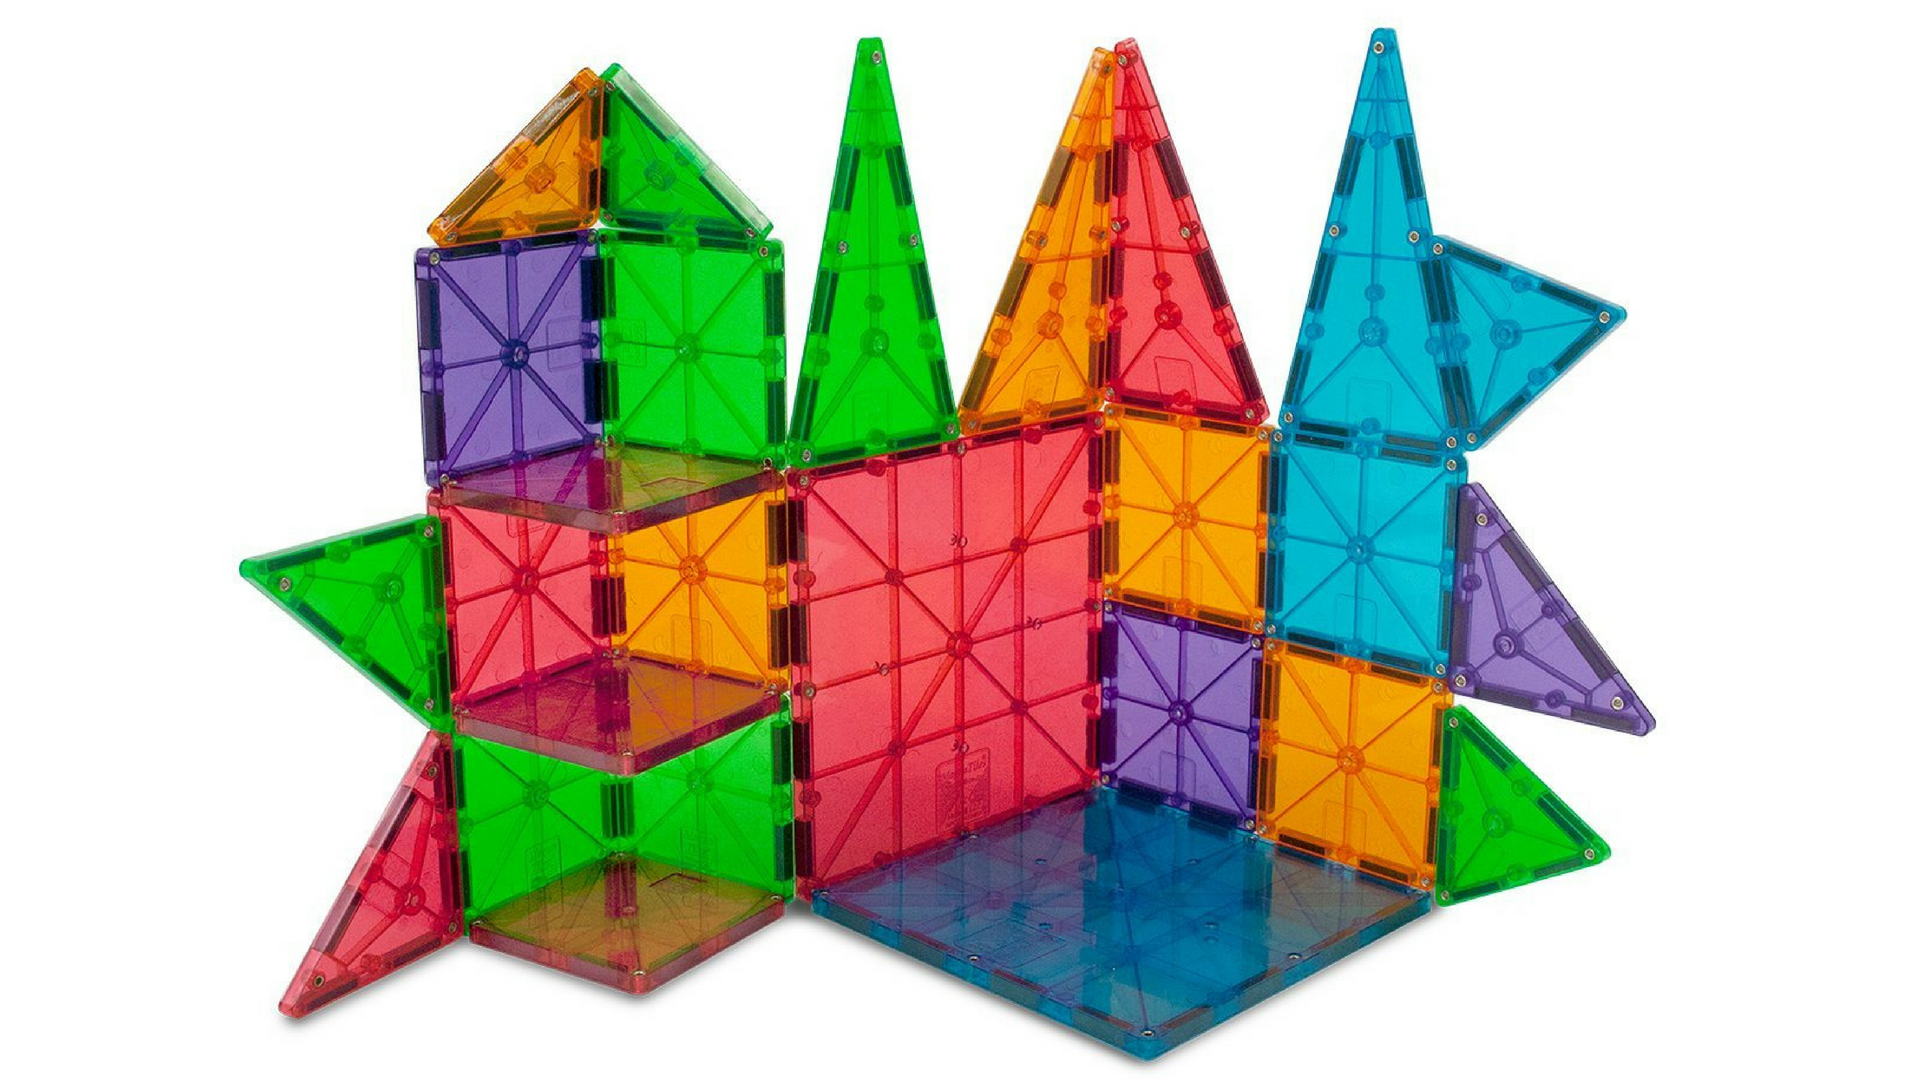 The Best Building Toys For Kids, According To An Architecture Critic